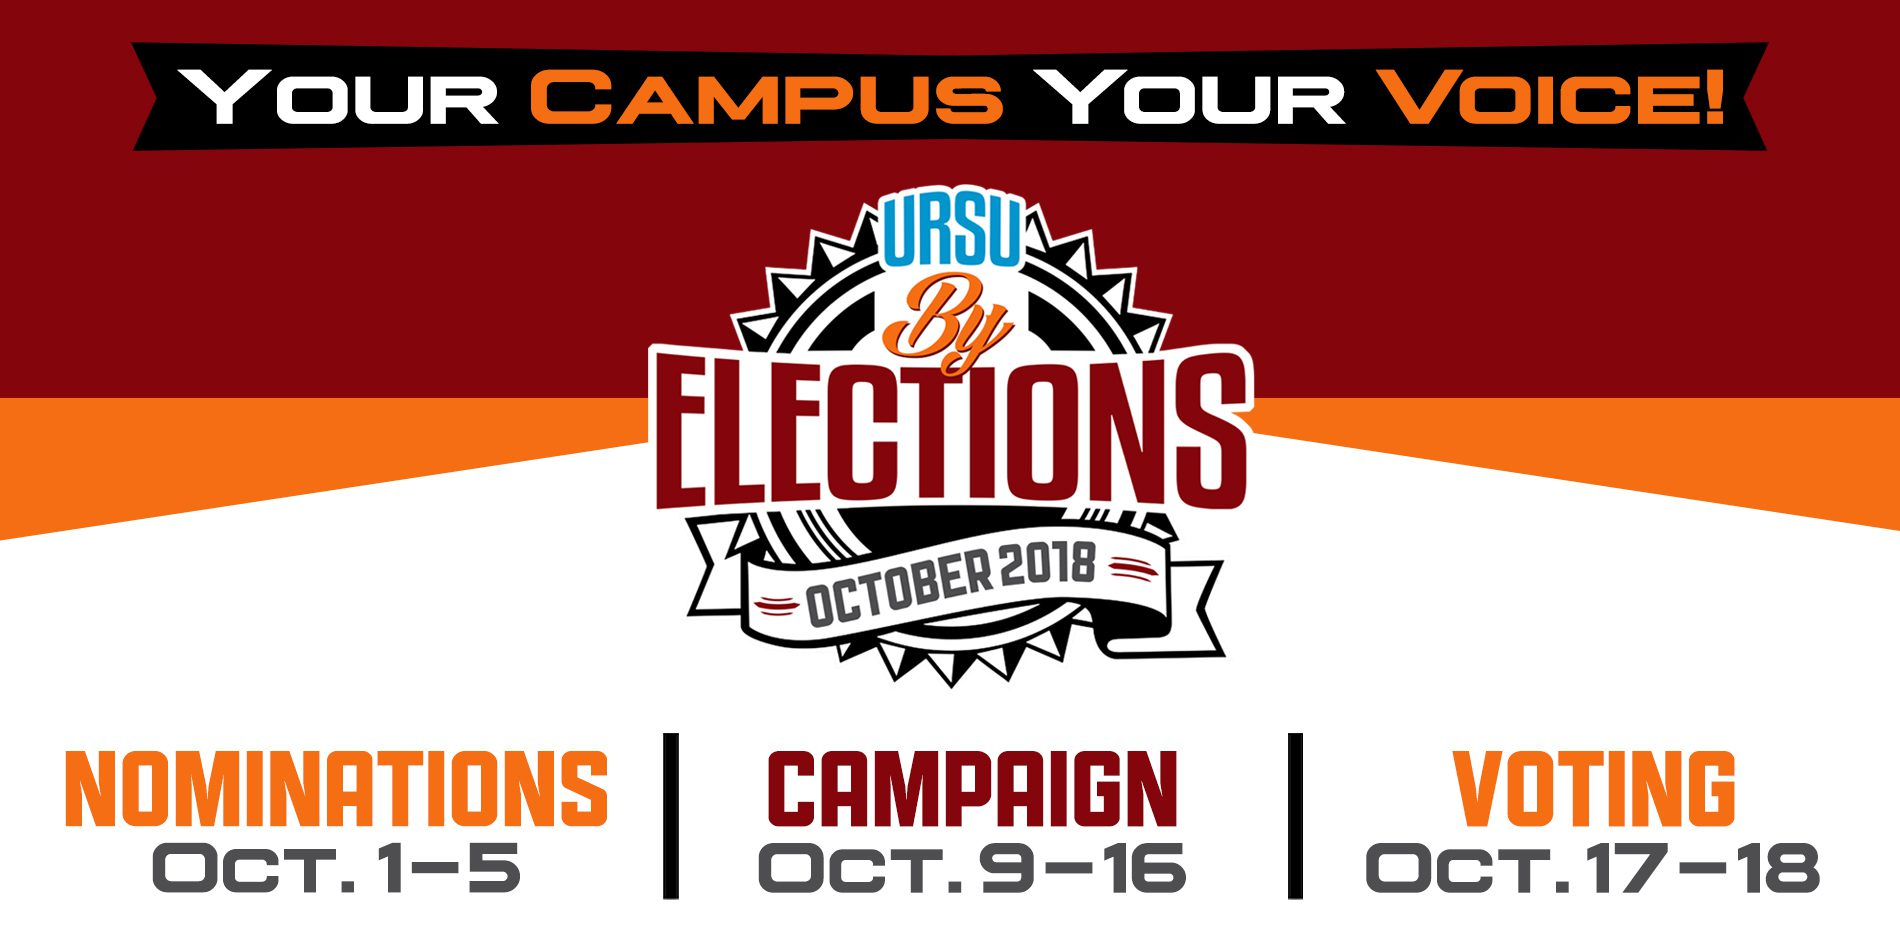 URSU By-Elections Announced for Oct. 17 and 18